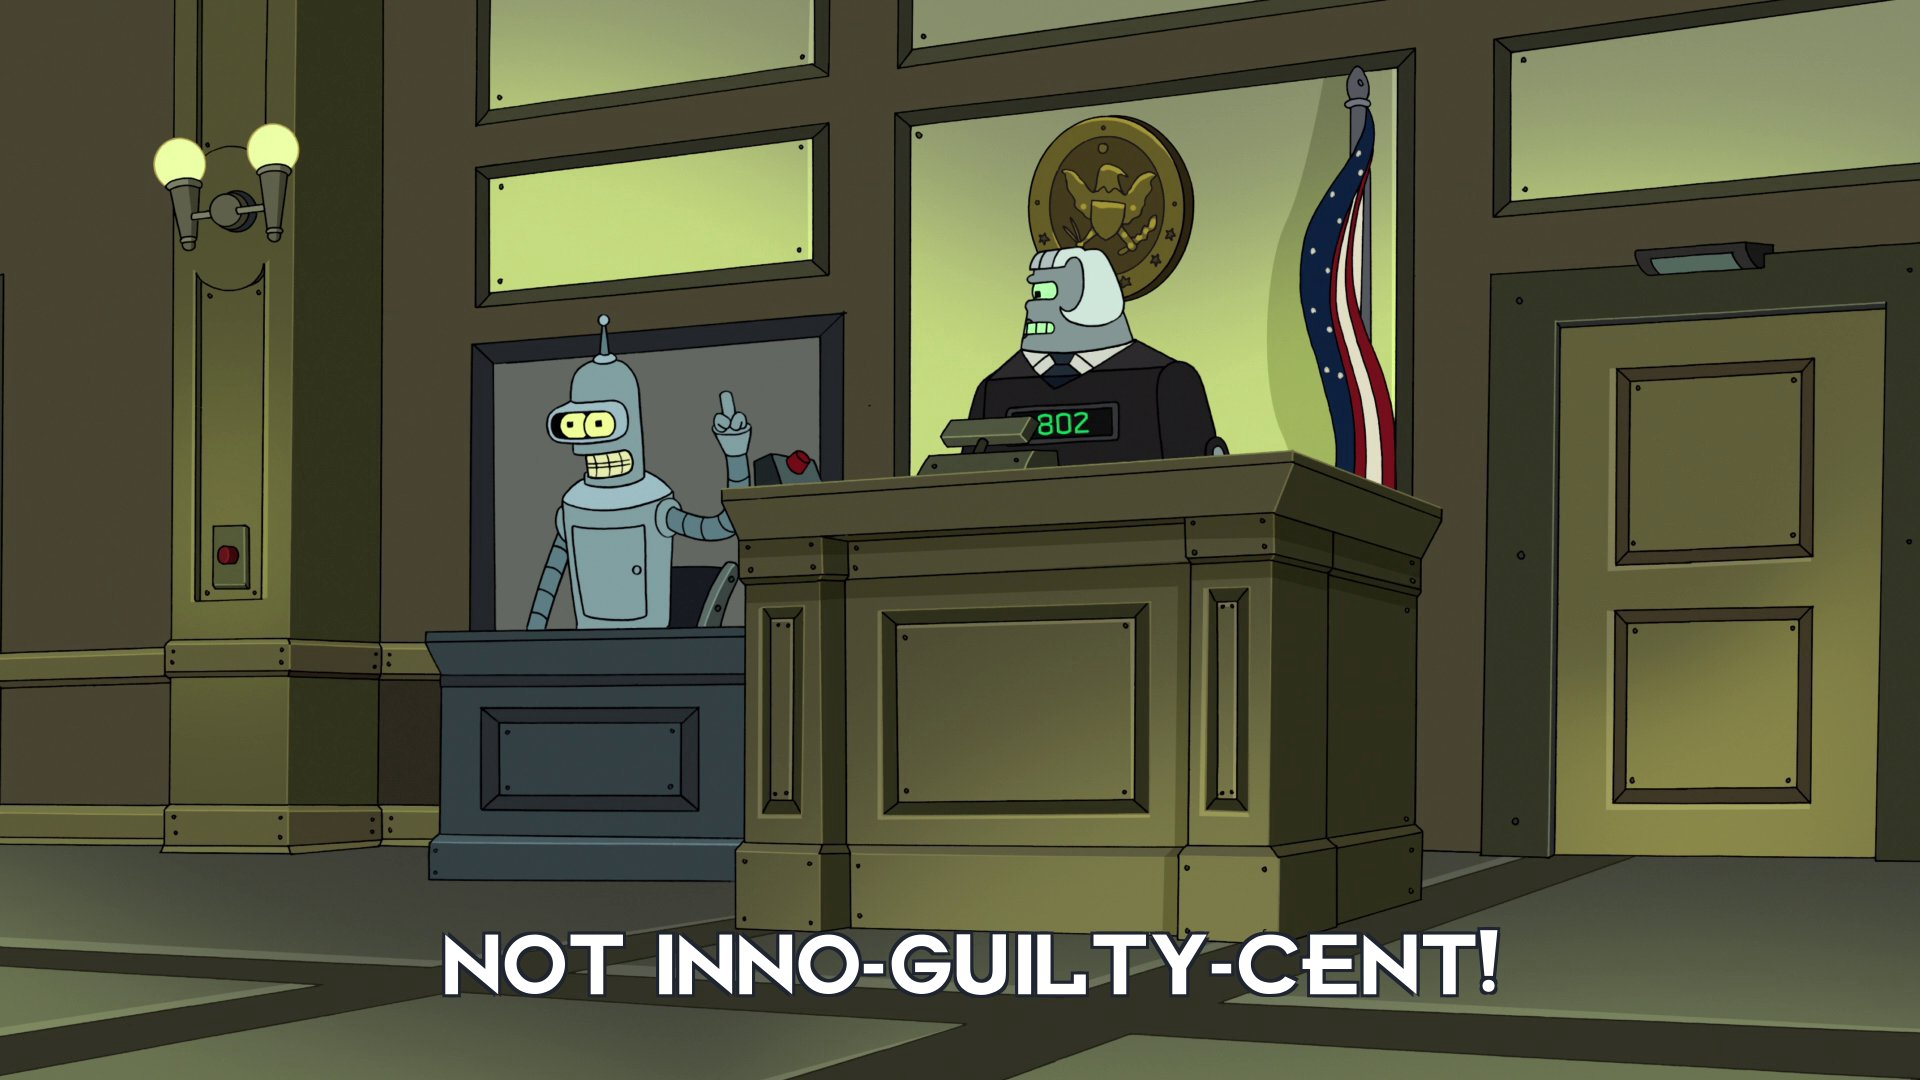 Bender Bending Rodriguez: Not inno-guilty-cent!